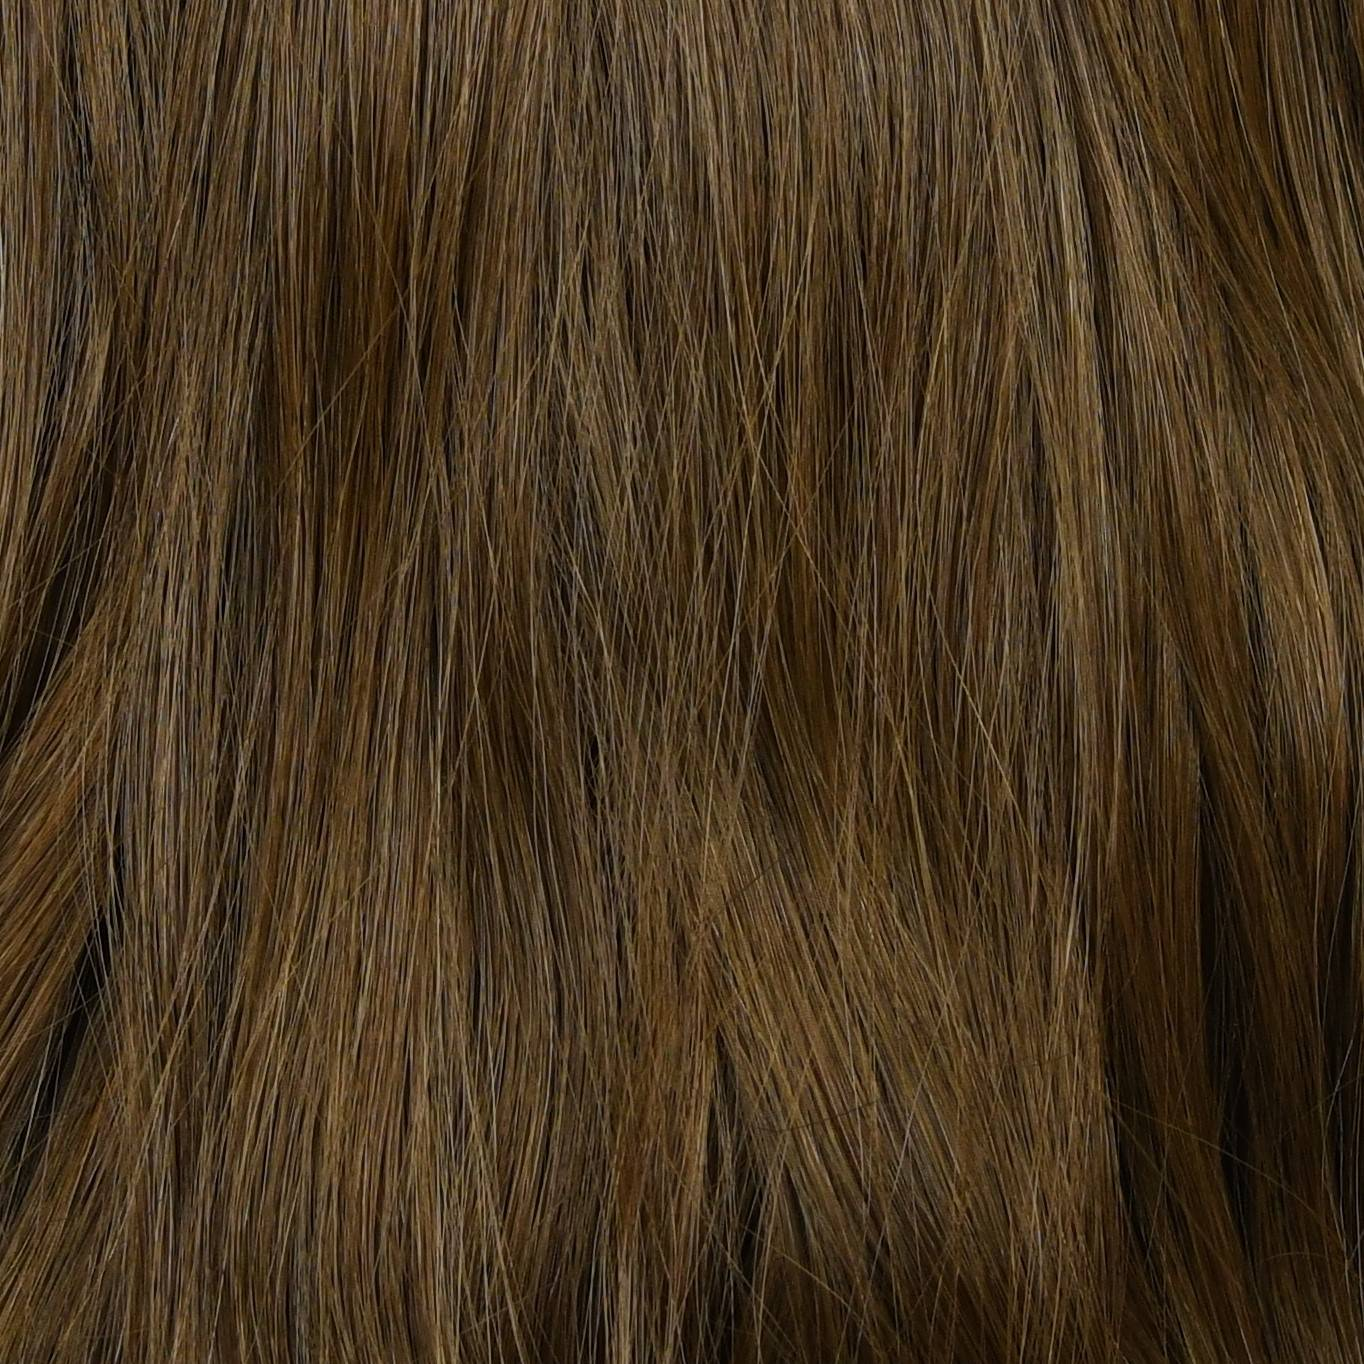 blend of light black and light brown hair extensions color sample in hair color chart